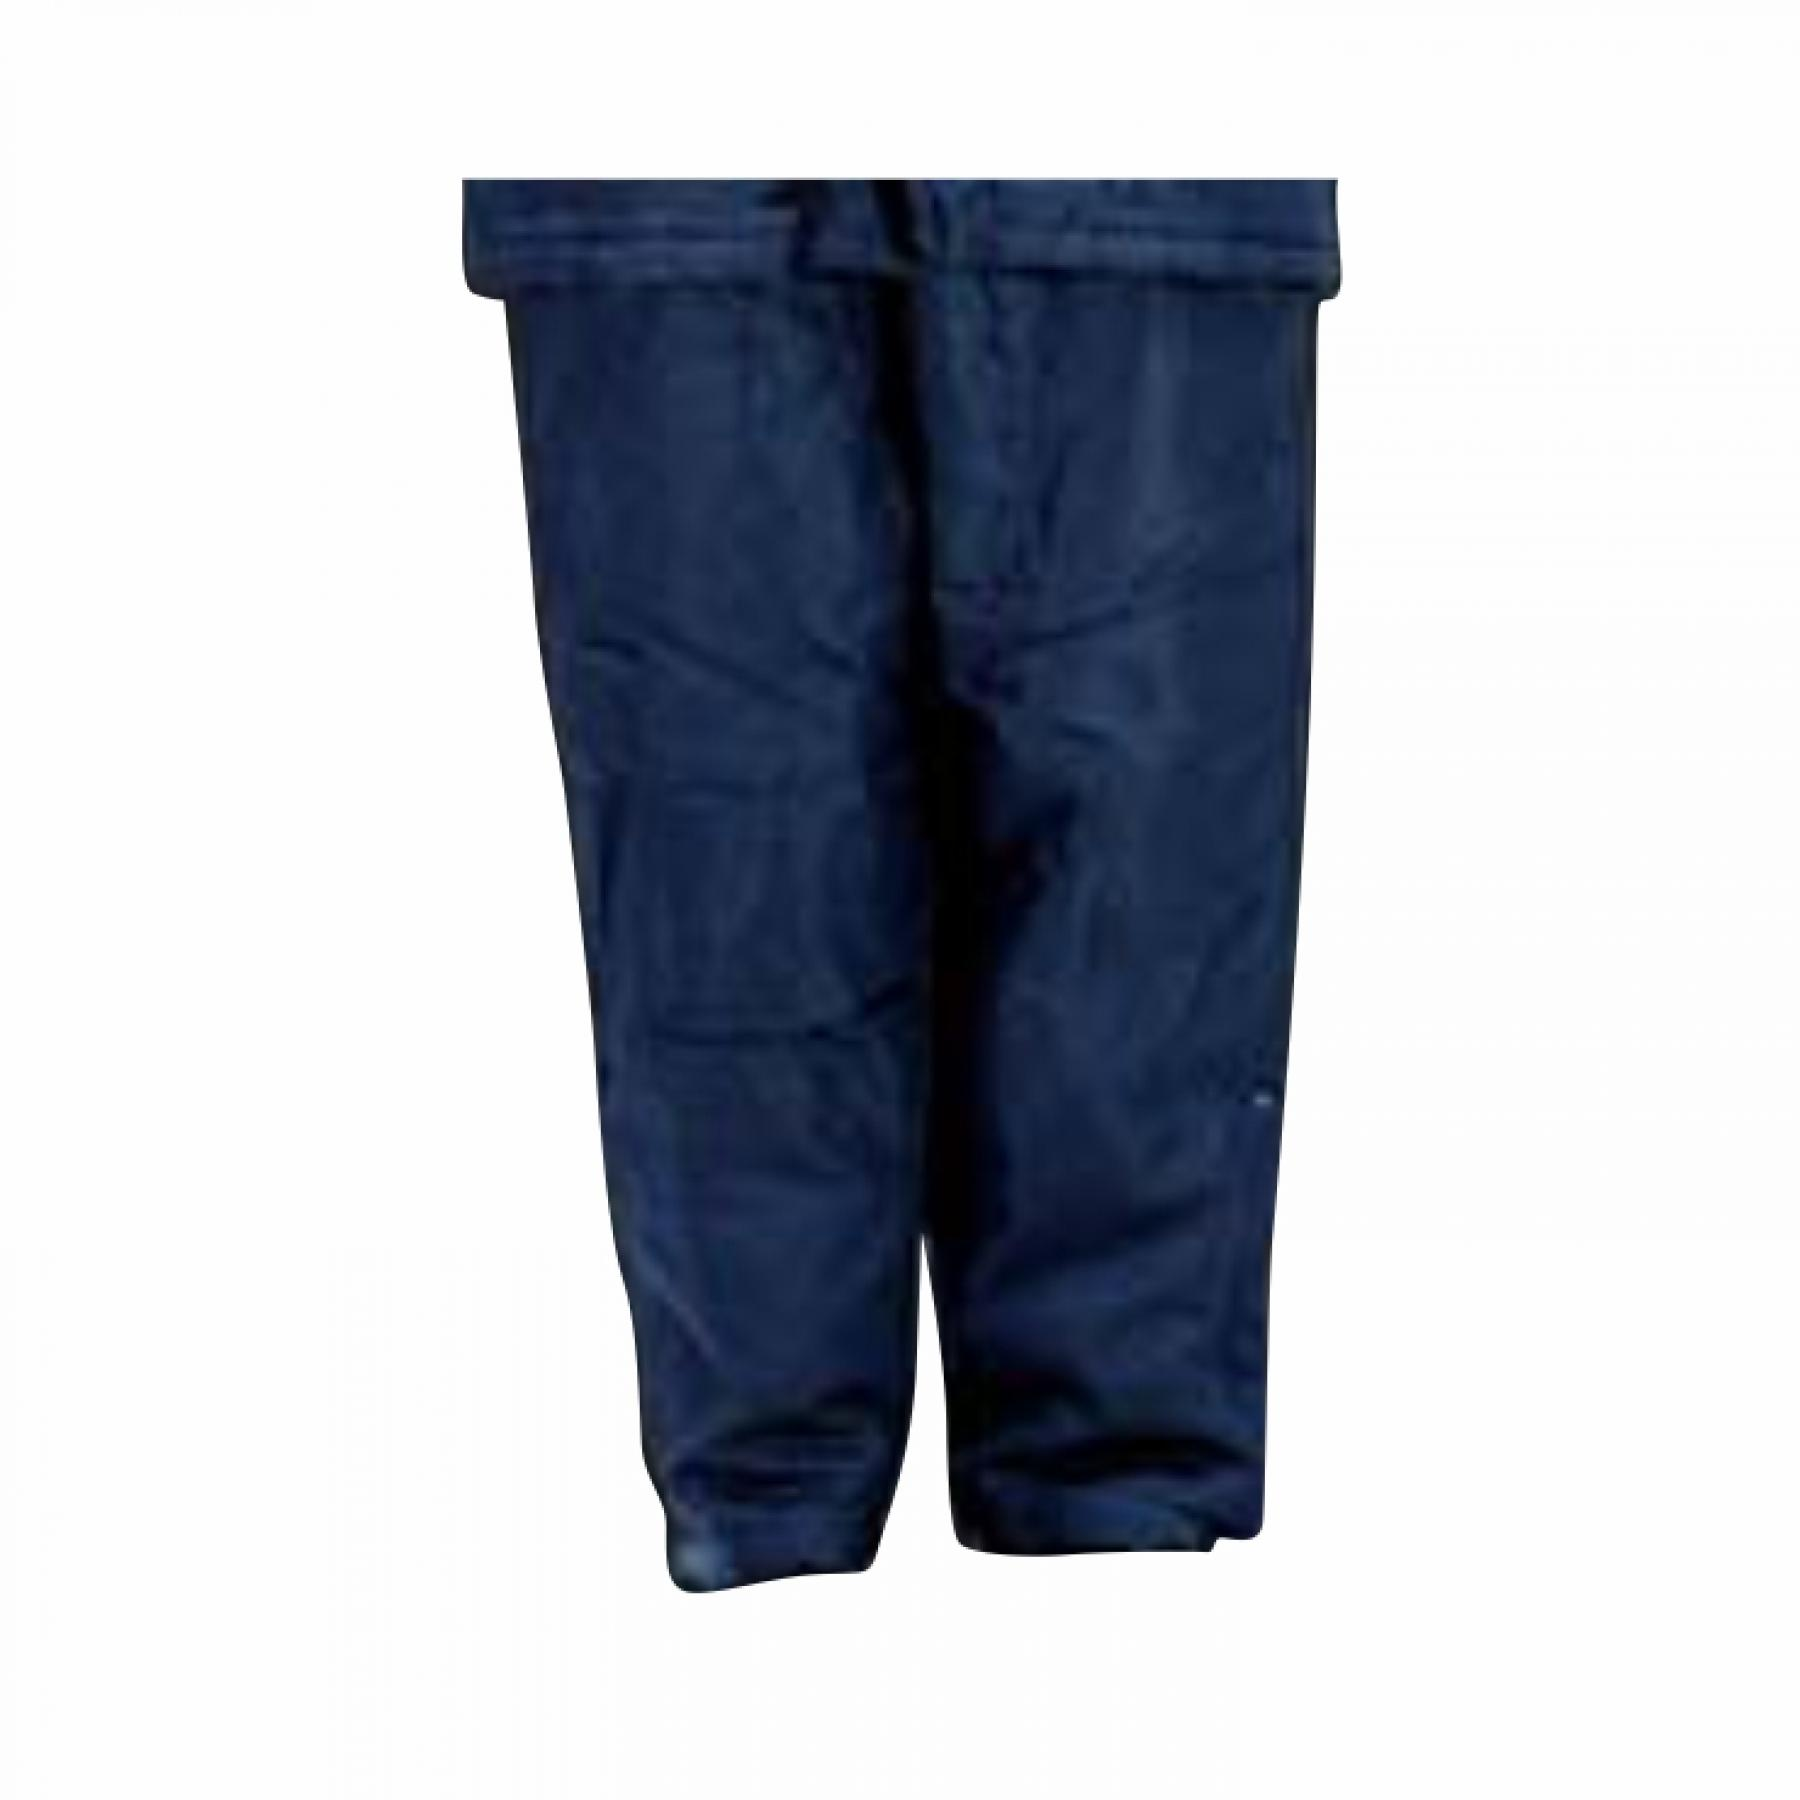 Artic Navy Blue Freezer Pants, Small